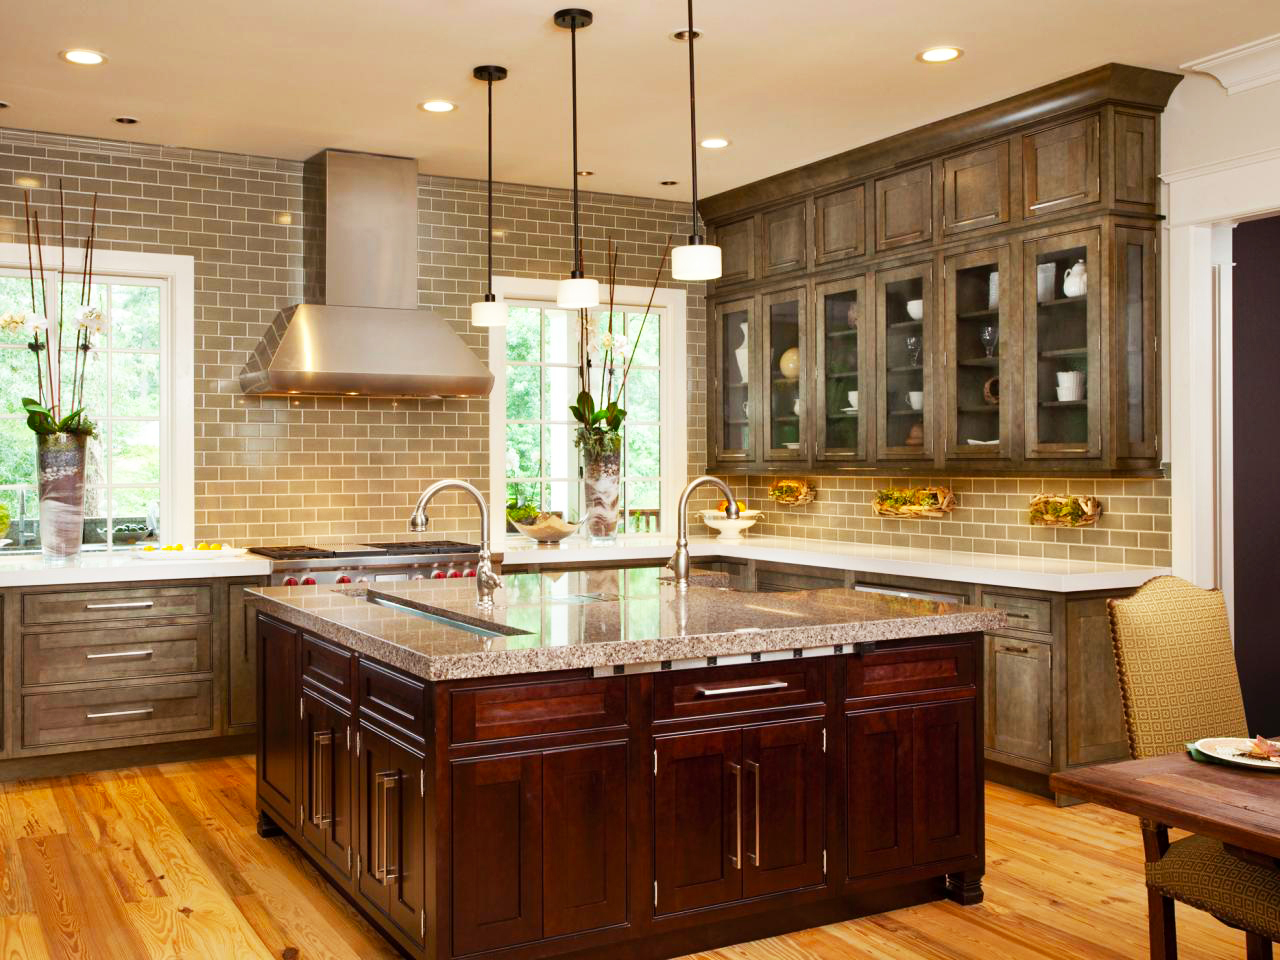 Ideas for custom kitchen cabinets roy home design for Cabinetry kitchen cabinets